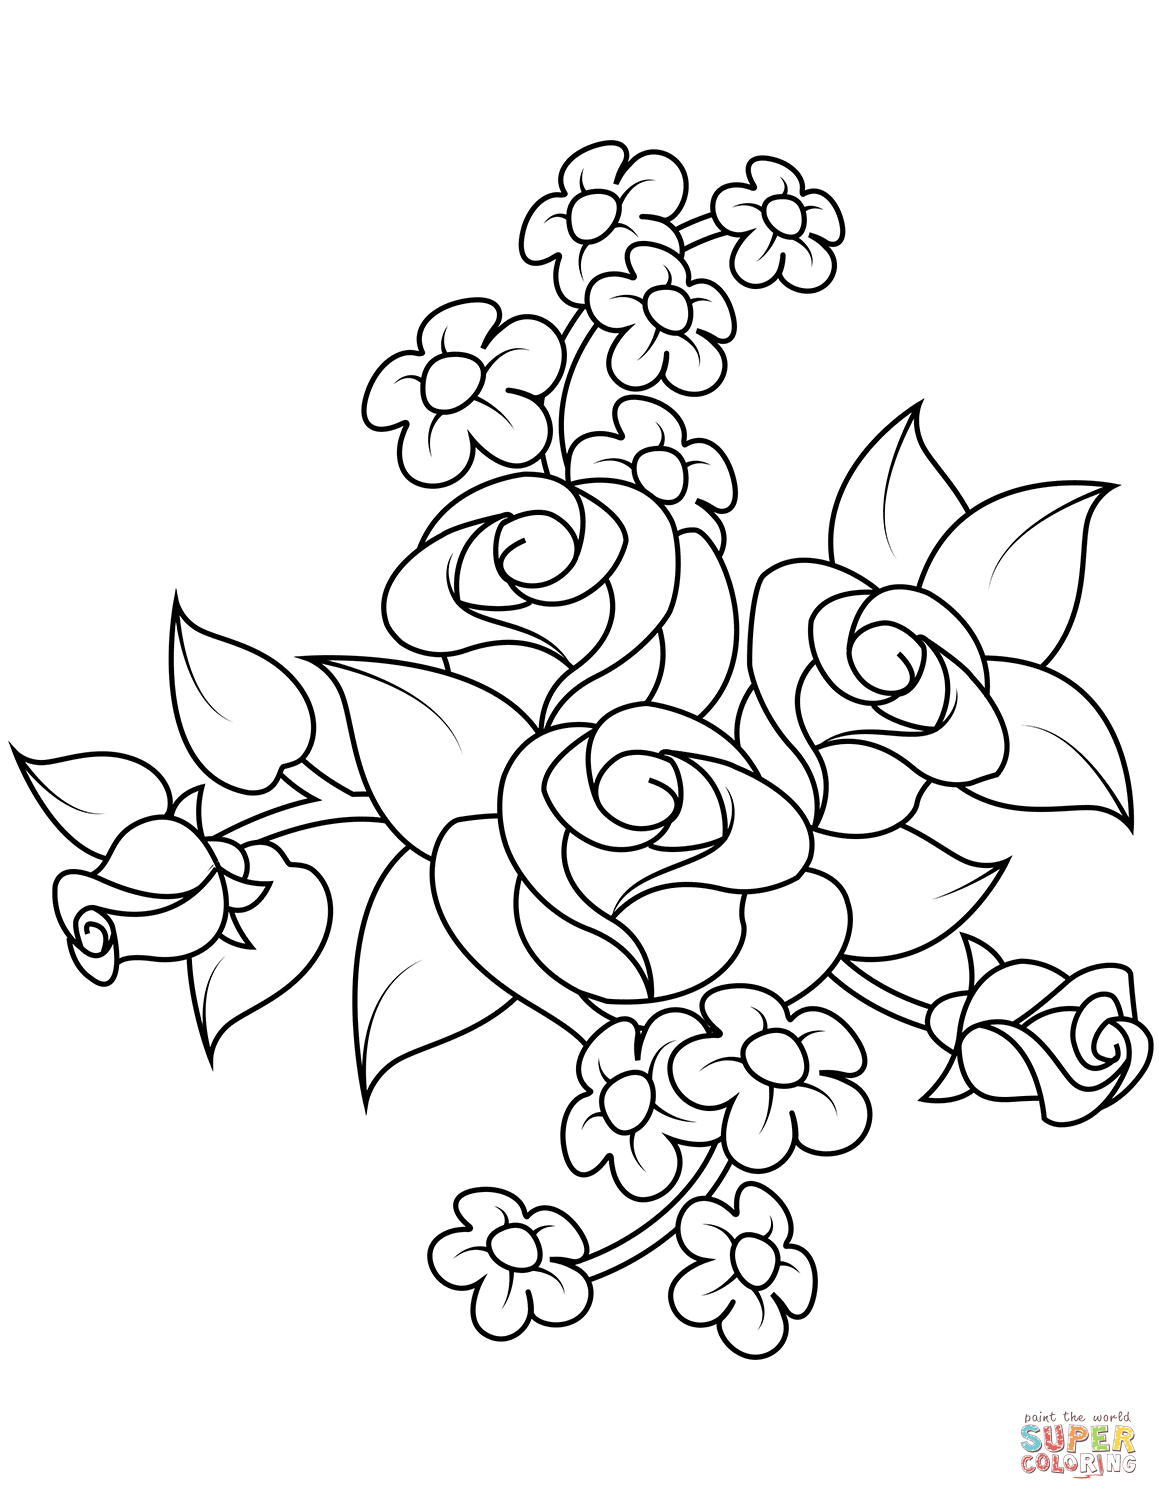 coloring picture rose bouquet of roses coloring page free printable coloring pages rose picture coloring